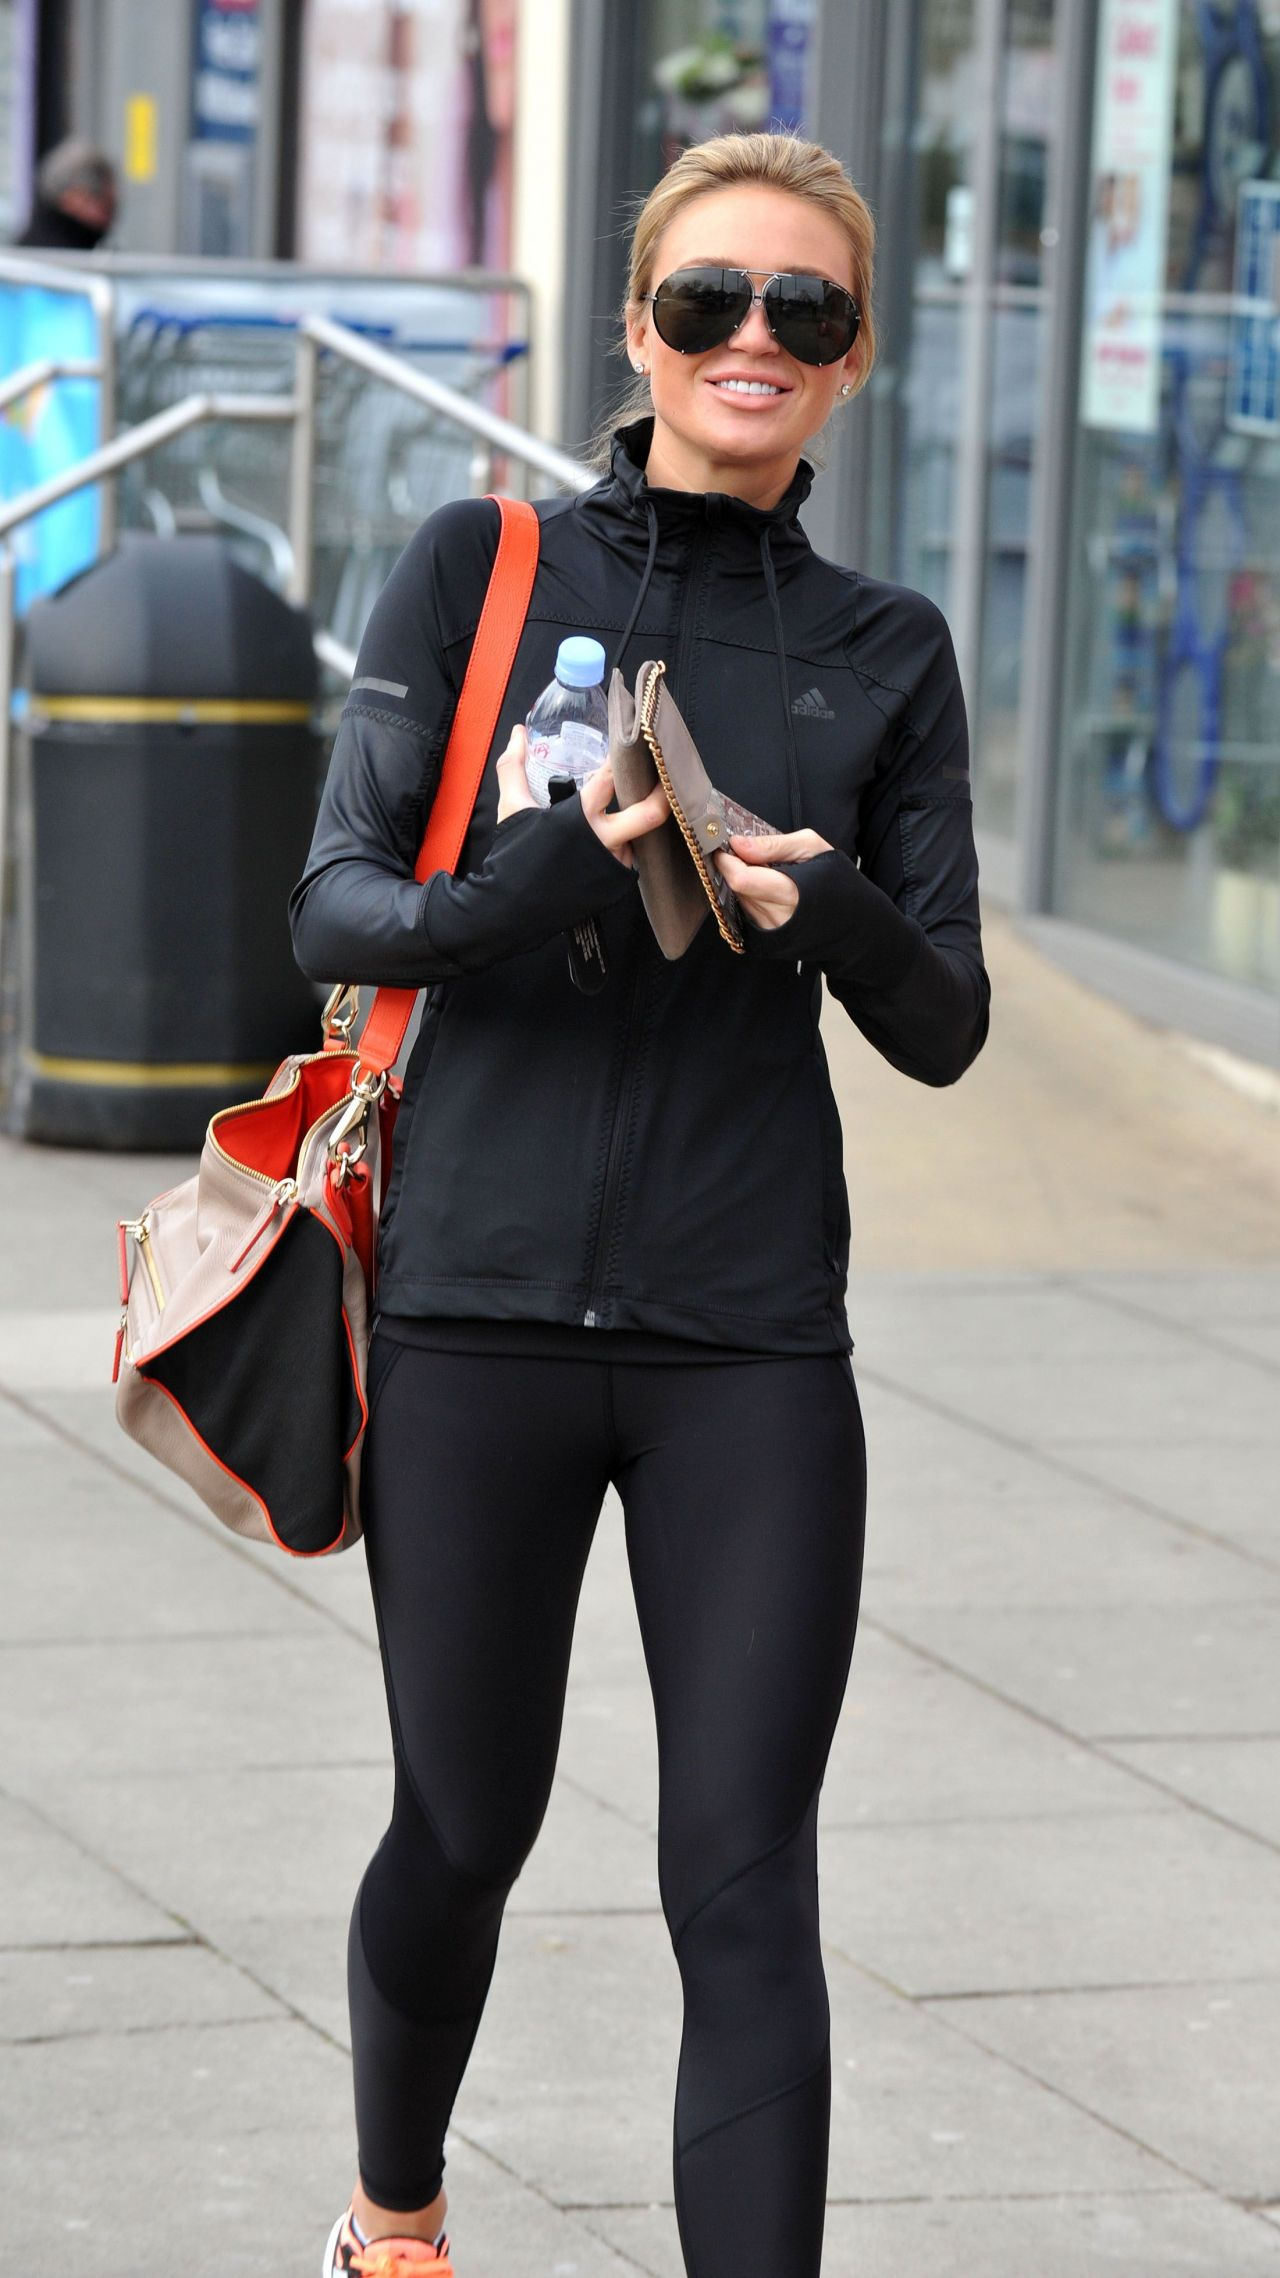 Alex Gerrard in Black Leggings and Tight Hoodie - Out in Liverpool, February 2015